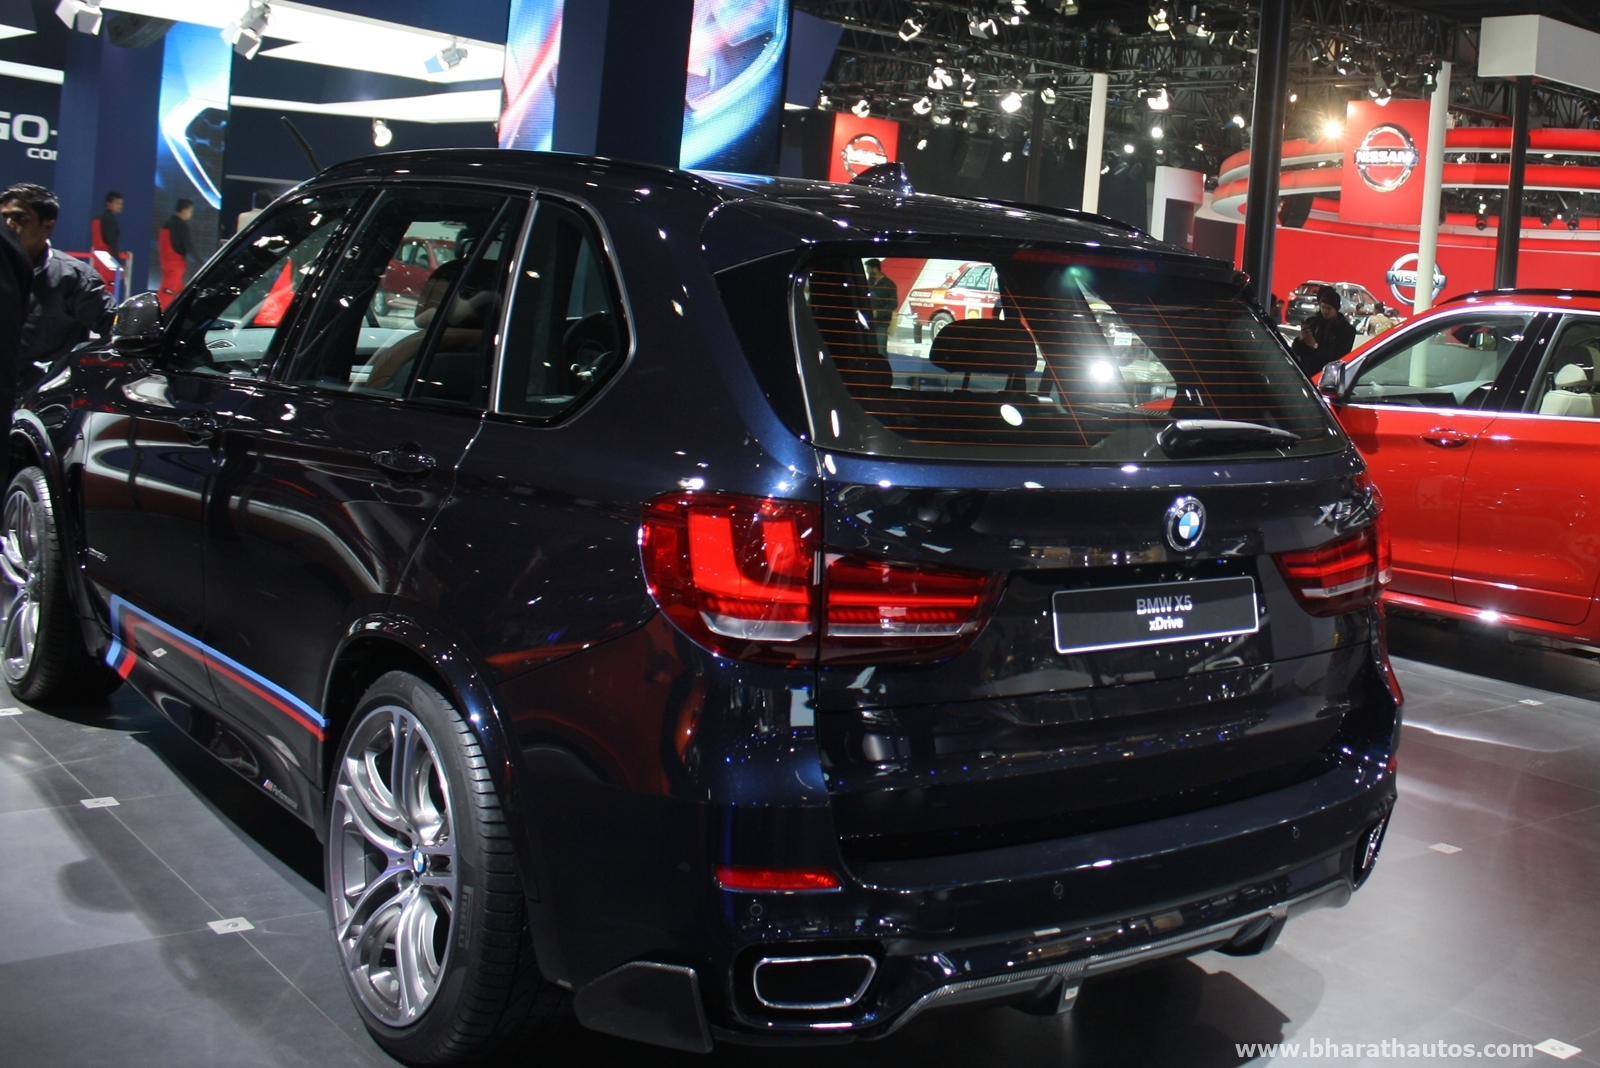 bmw india launched x5 xdrive30d m sport at 2016 auto expo priced rs 75 9 lakh. Black Bedroom Furniture Sets. Home Design Ideas